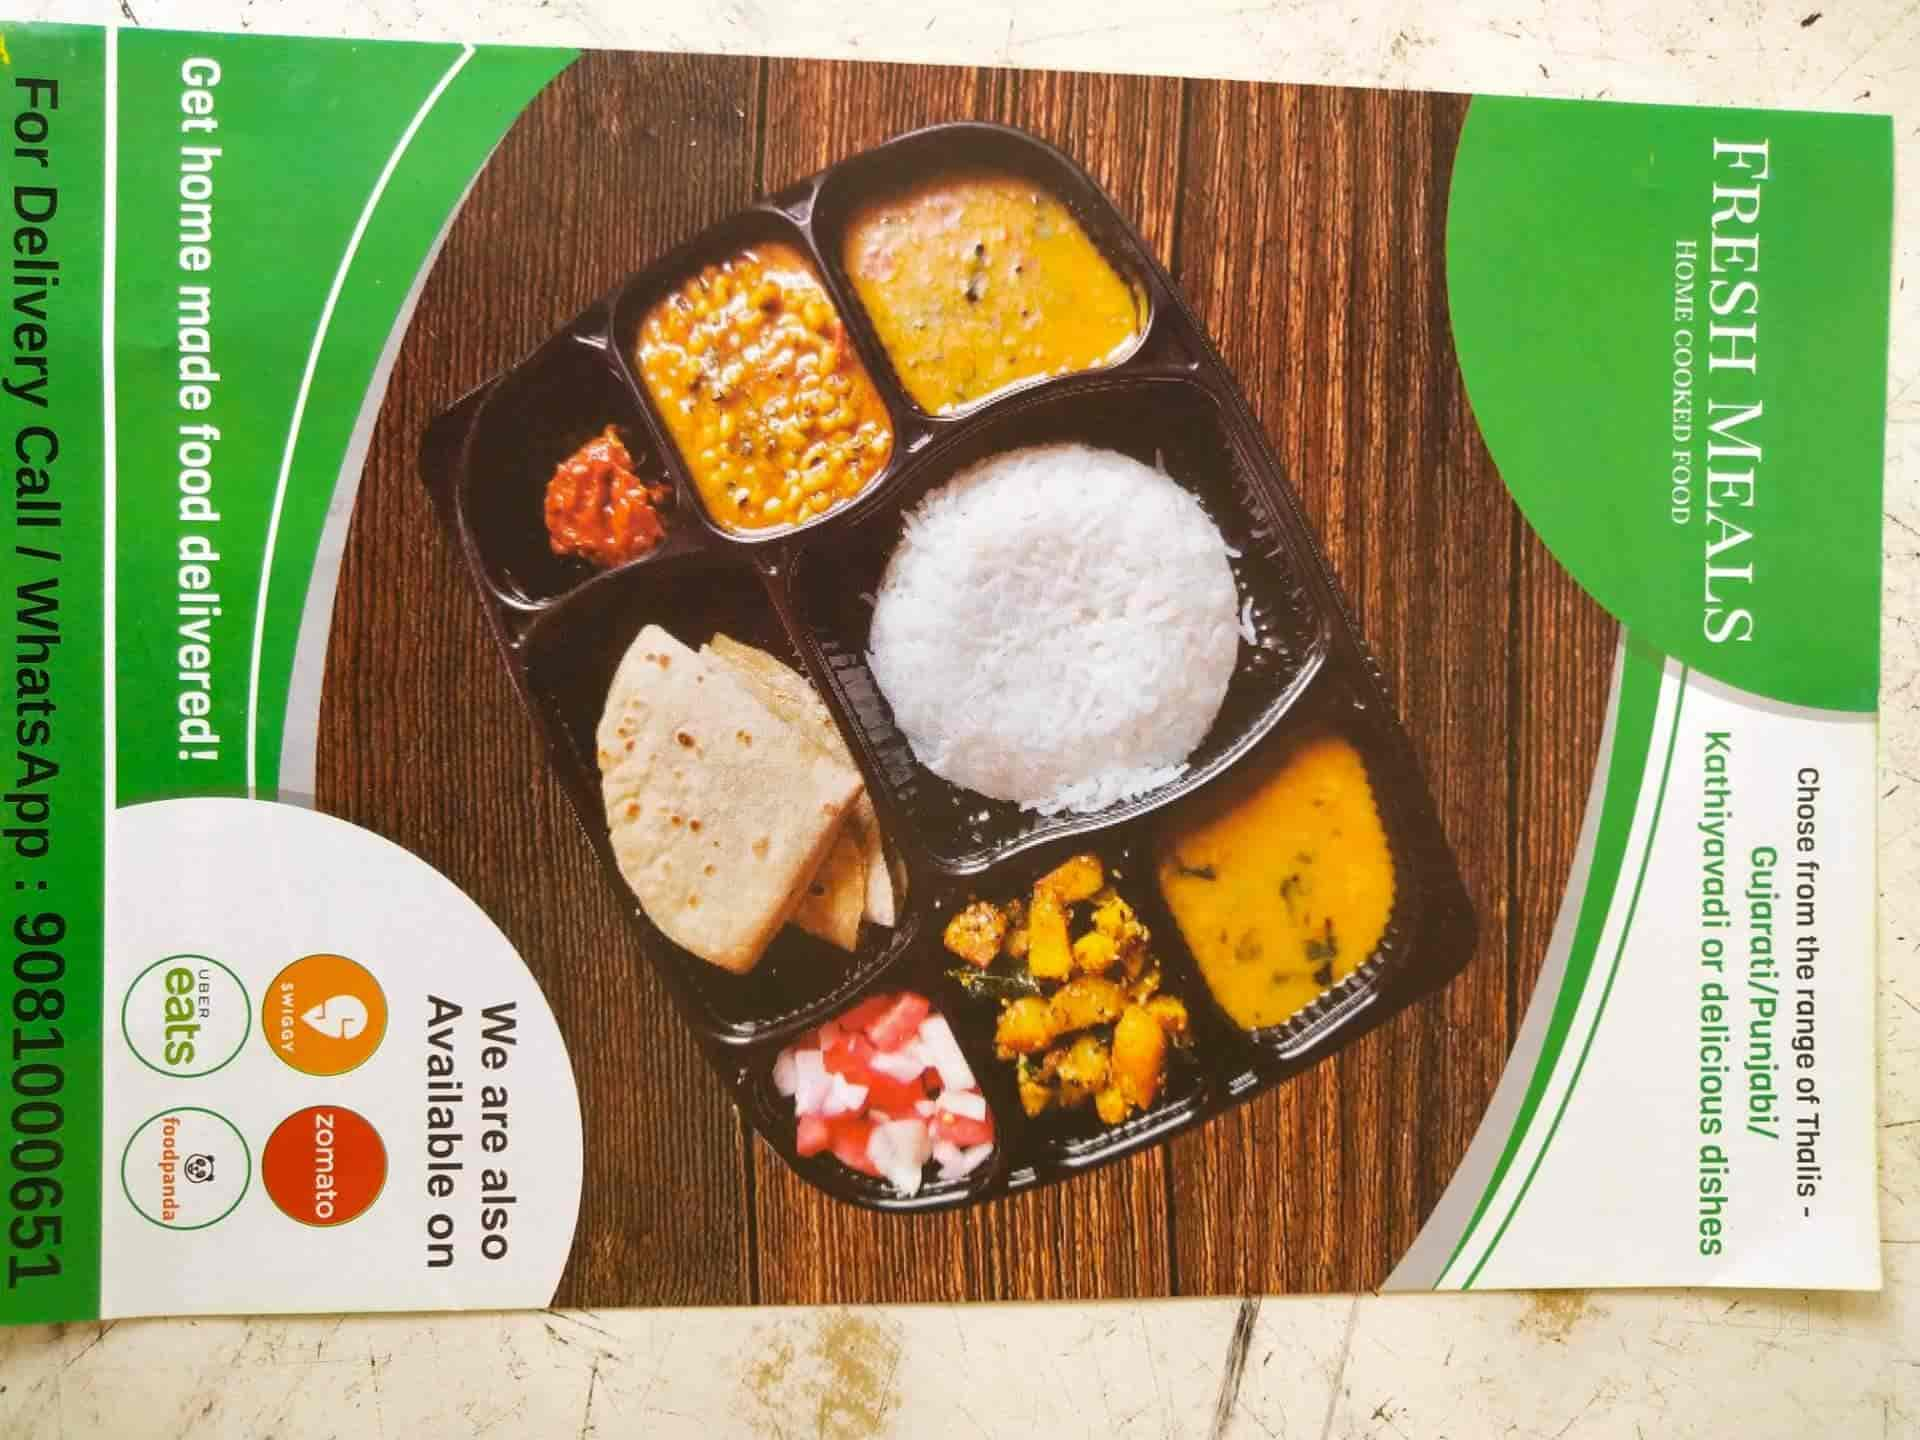 Fresh Meals, Gota Road, Ahmedabad - Fast Food - Justdial